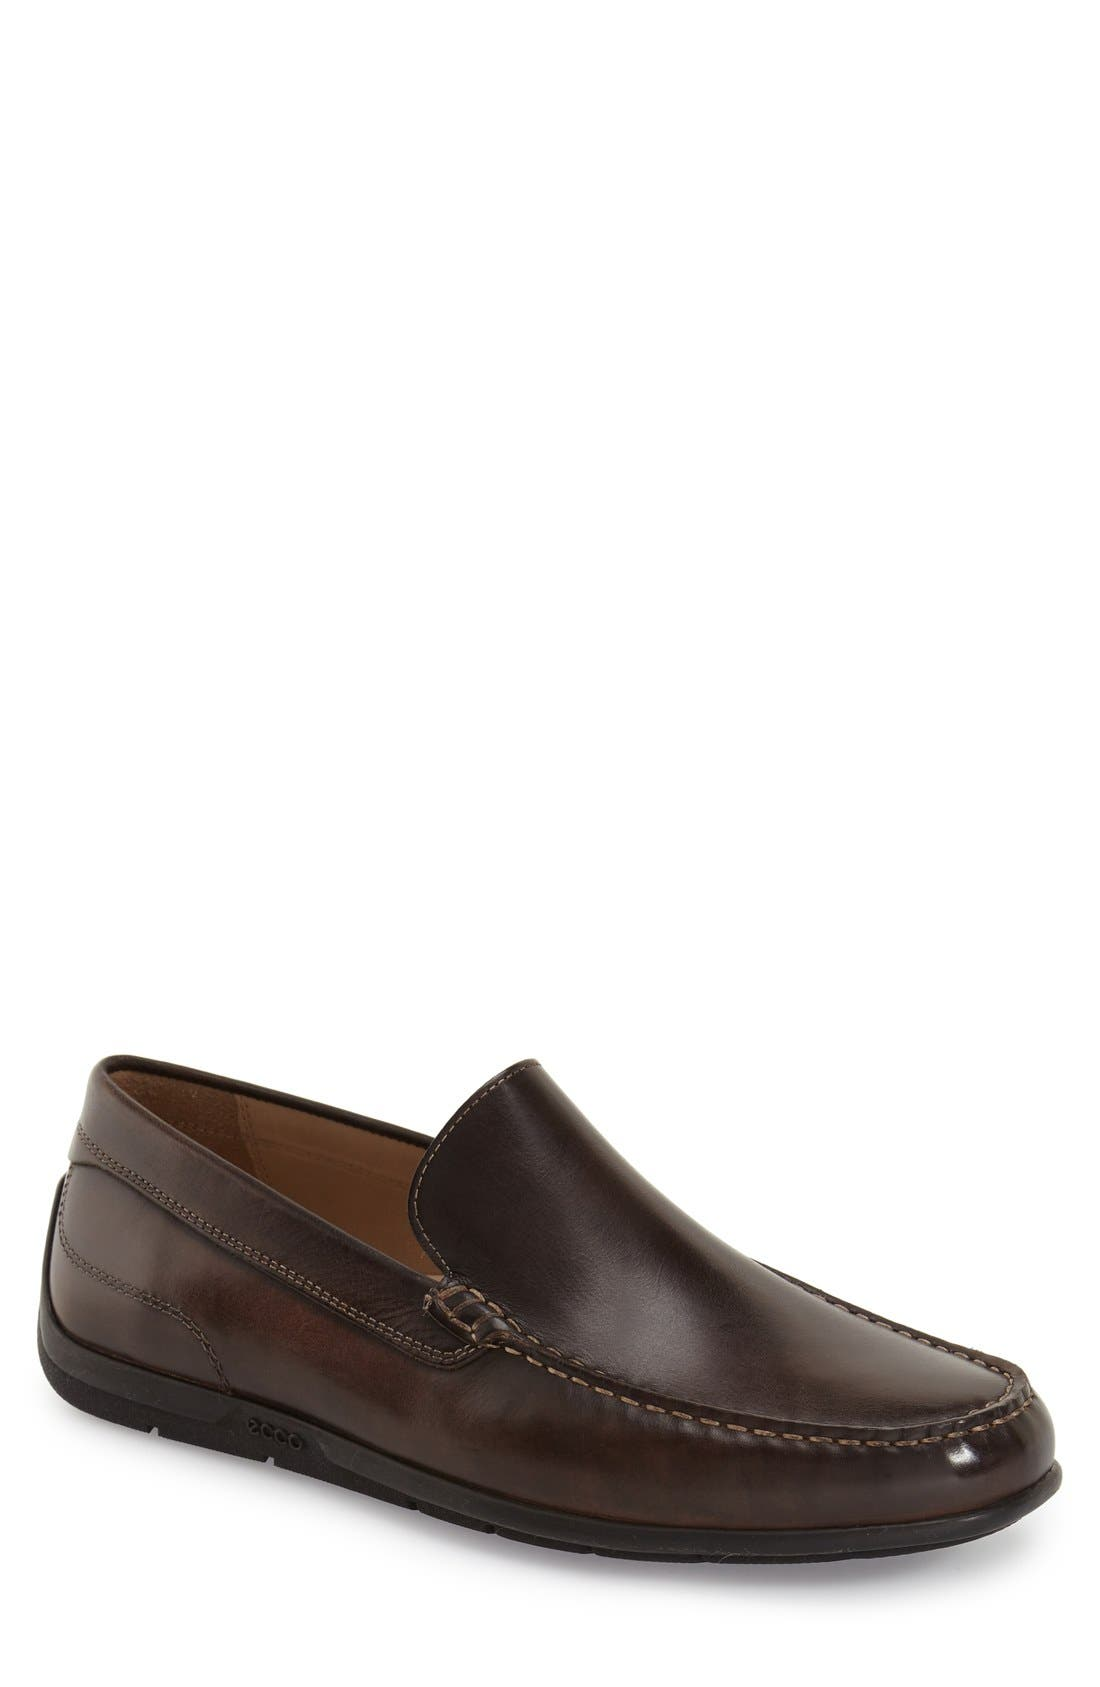 ECCO 'Classic Moc II' Venetian Loafer, Main, color, COFFEE LEATHER